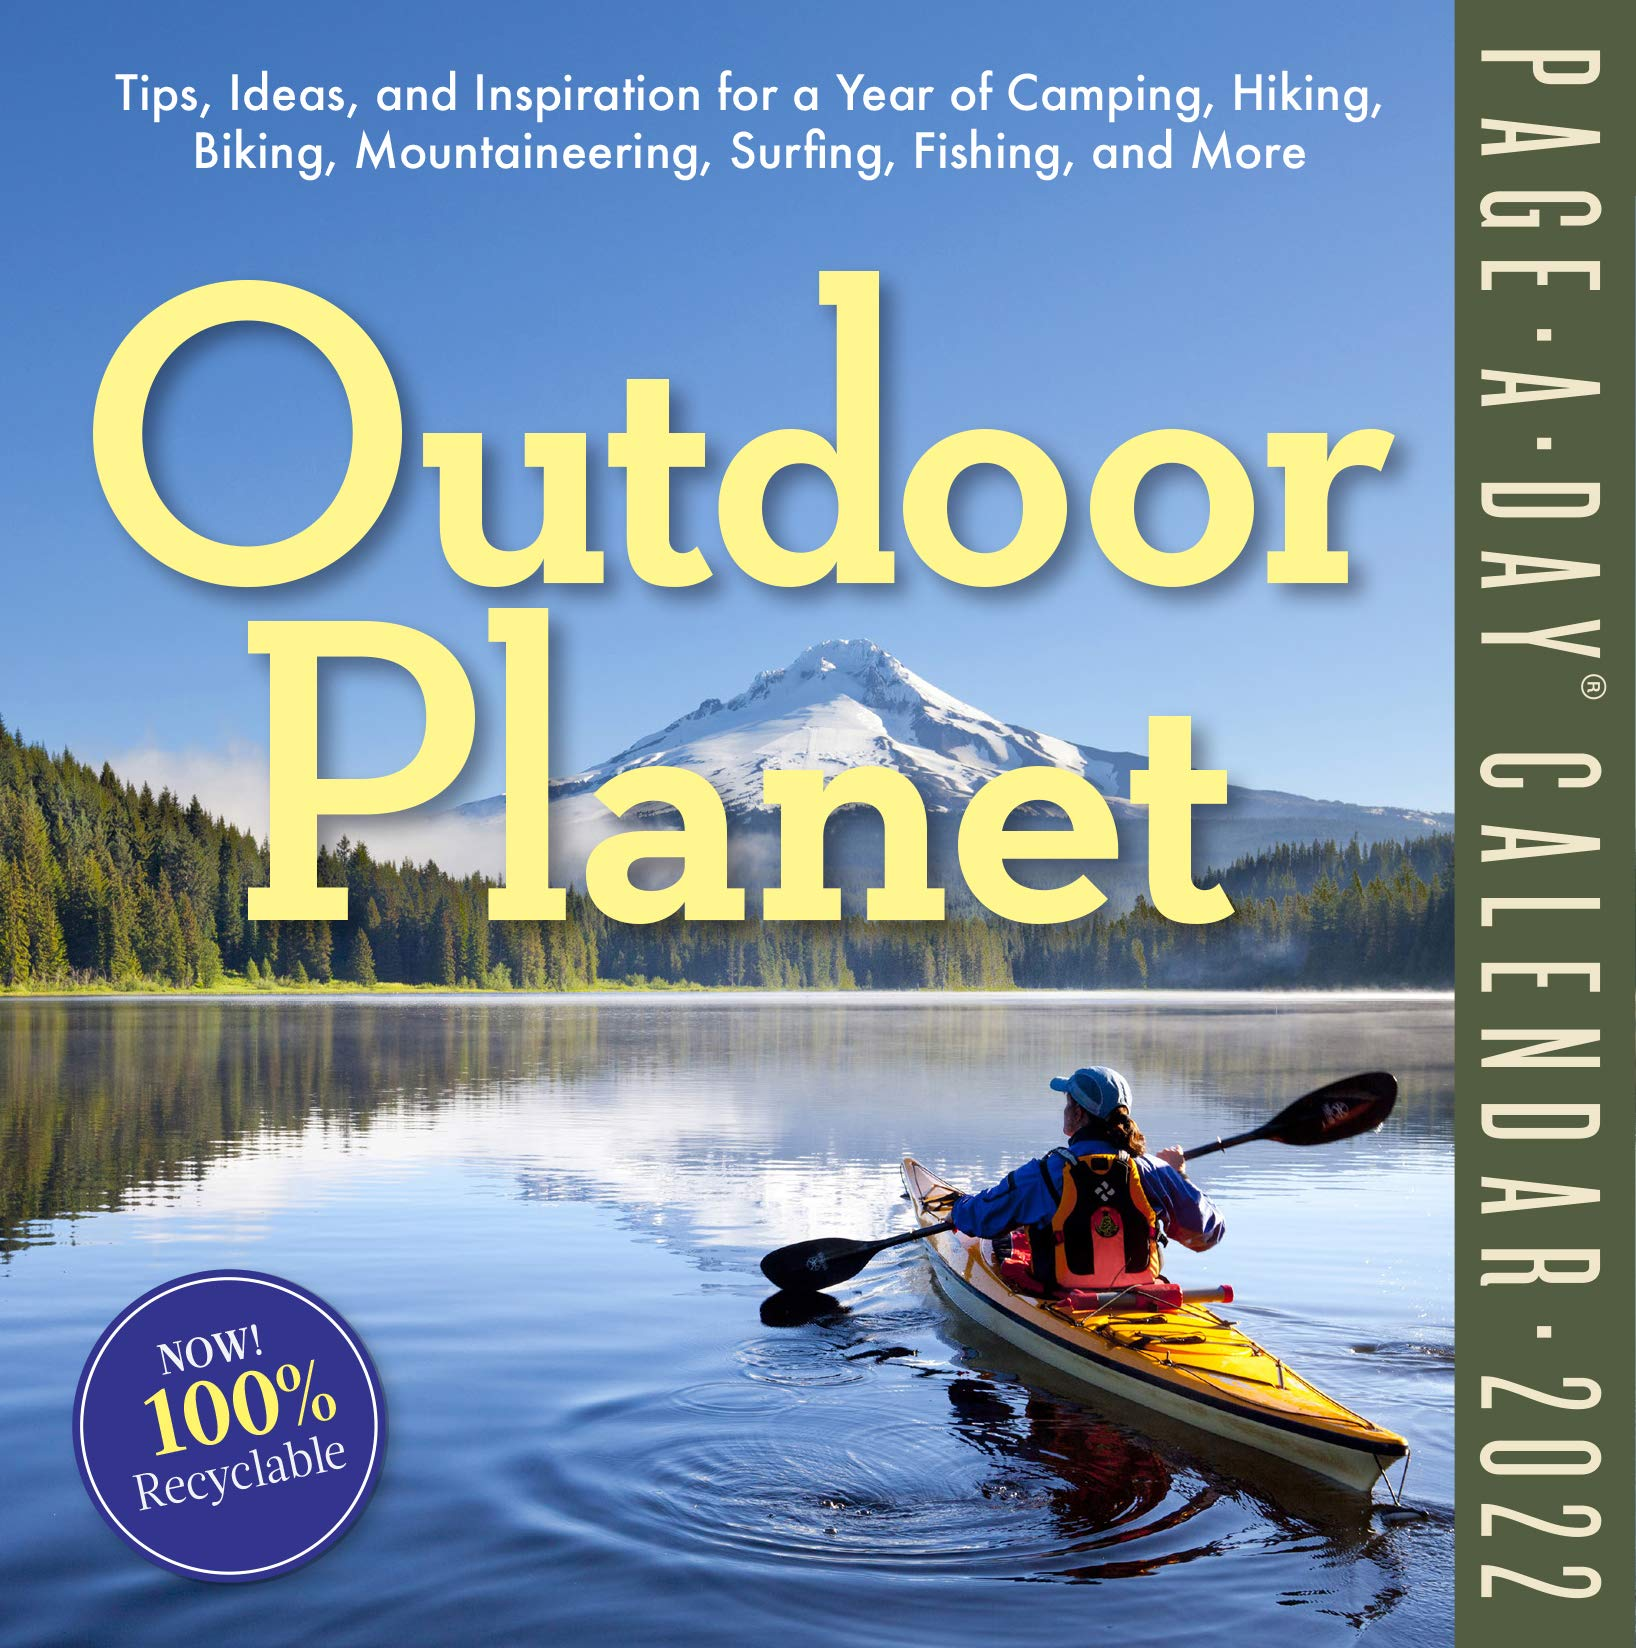 Buy Outdoor Planet Page A Day Calendar 2022 Tips Ideas And Inspiration For A Year Of Camping Hiking Biking Mountaineering Surfing Fishing And More Book Online At Low Prices In India Outdoor Planet